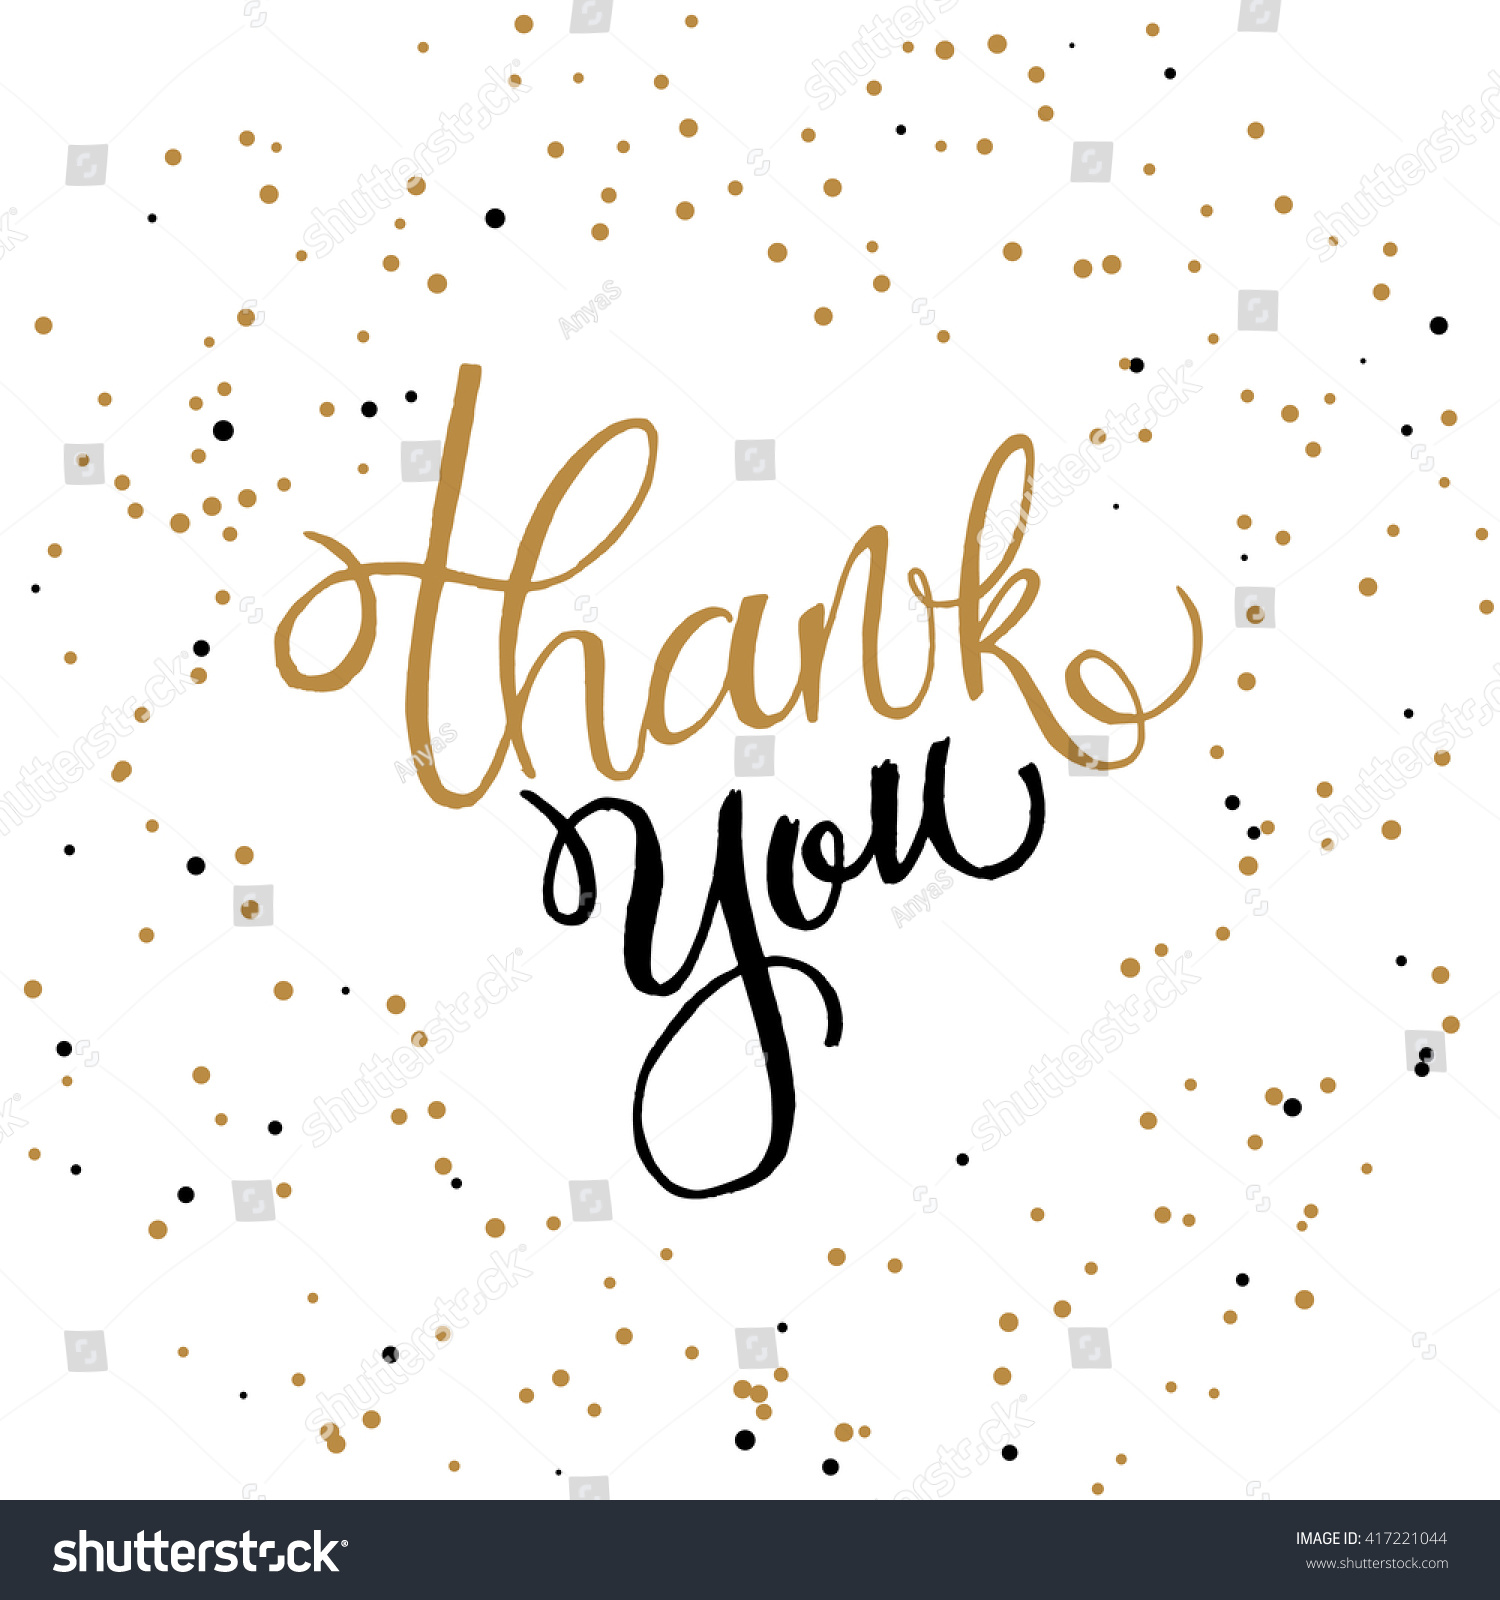 Handwritten vector lettering phrase thank you stock vector Thank you in calligraphy writing